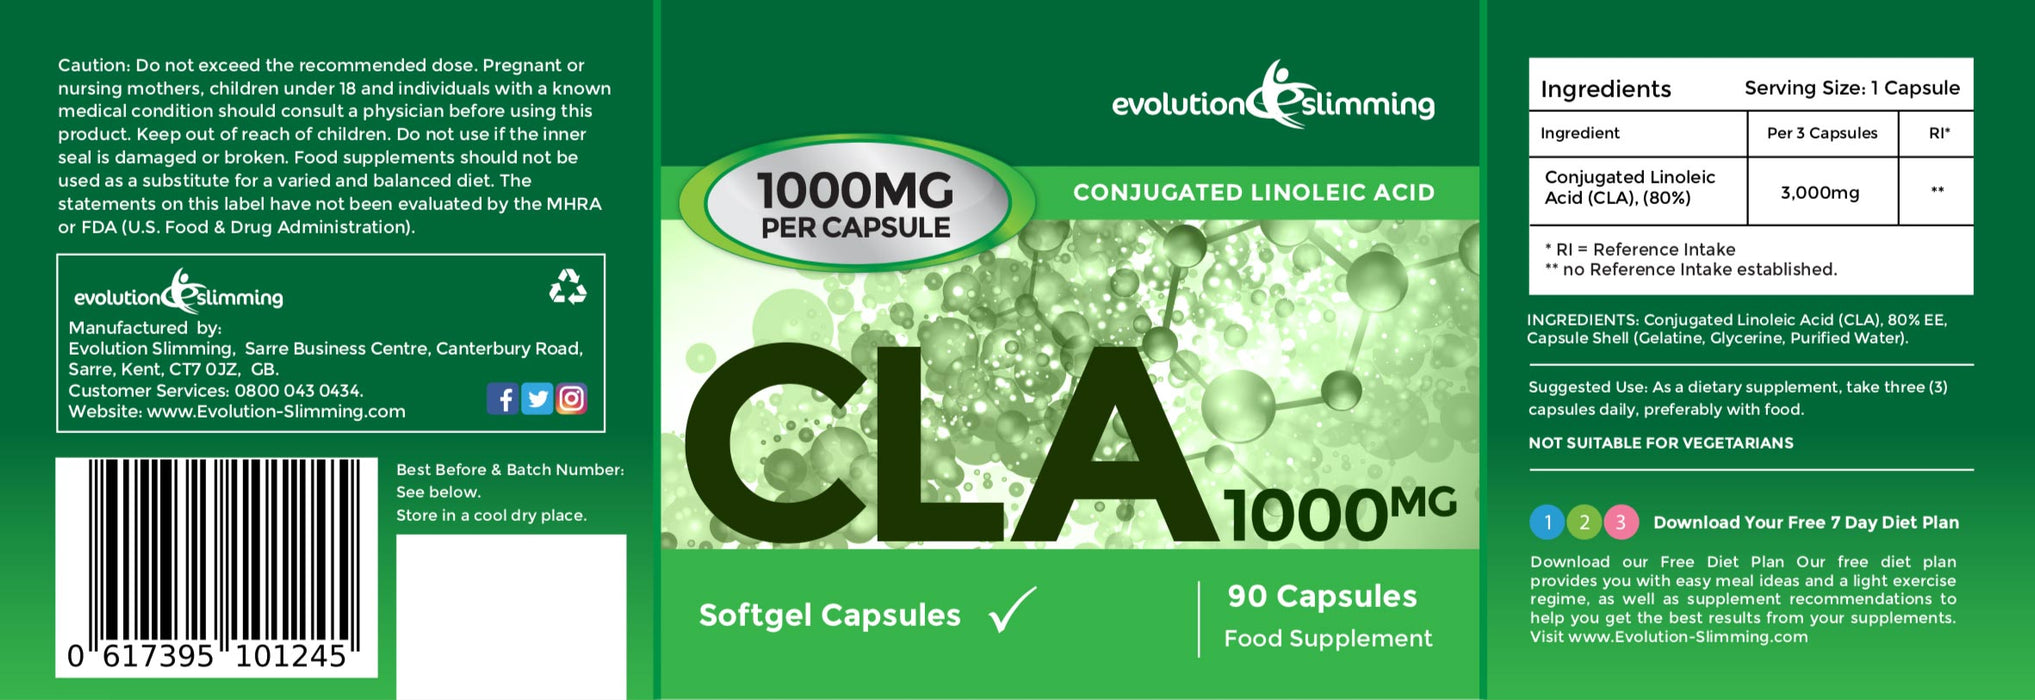 CLA Capsules 1000mg Label